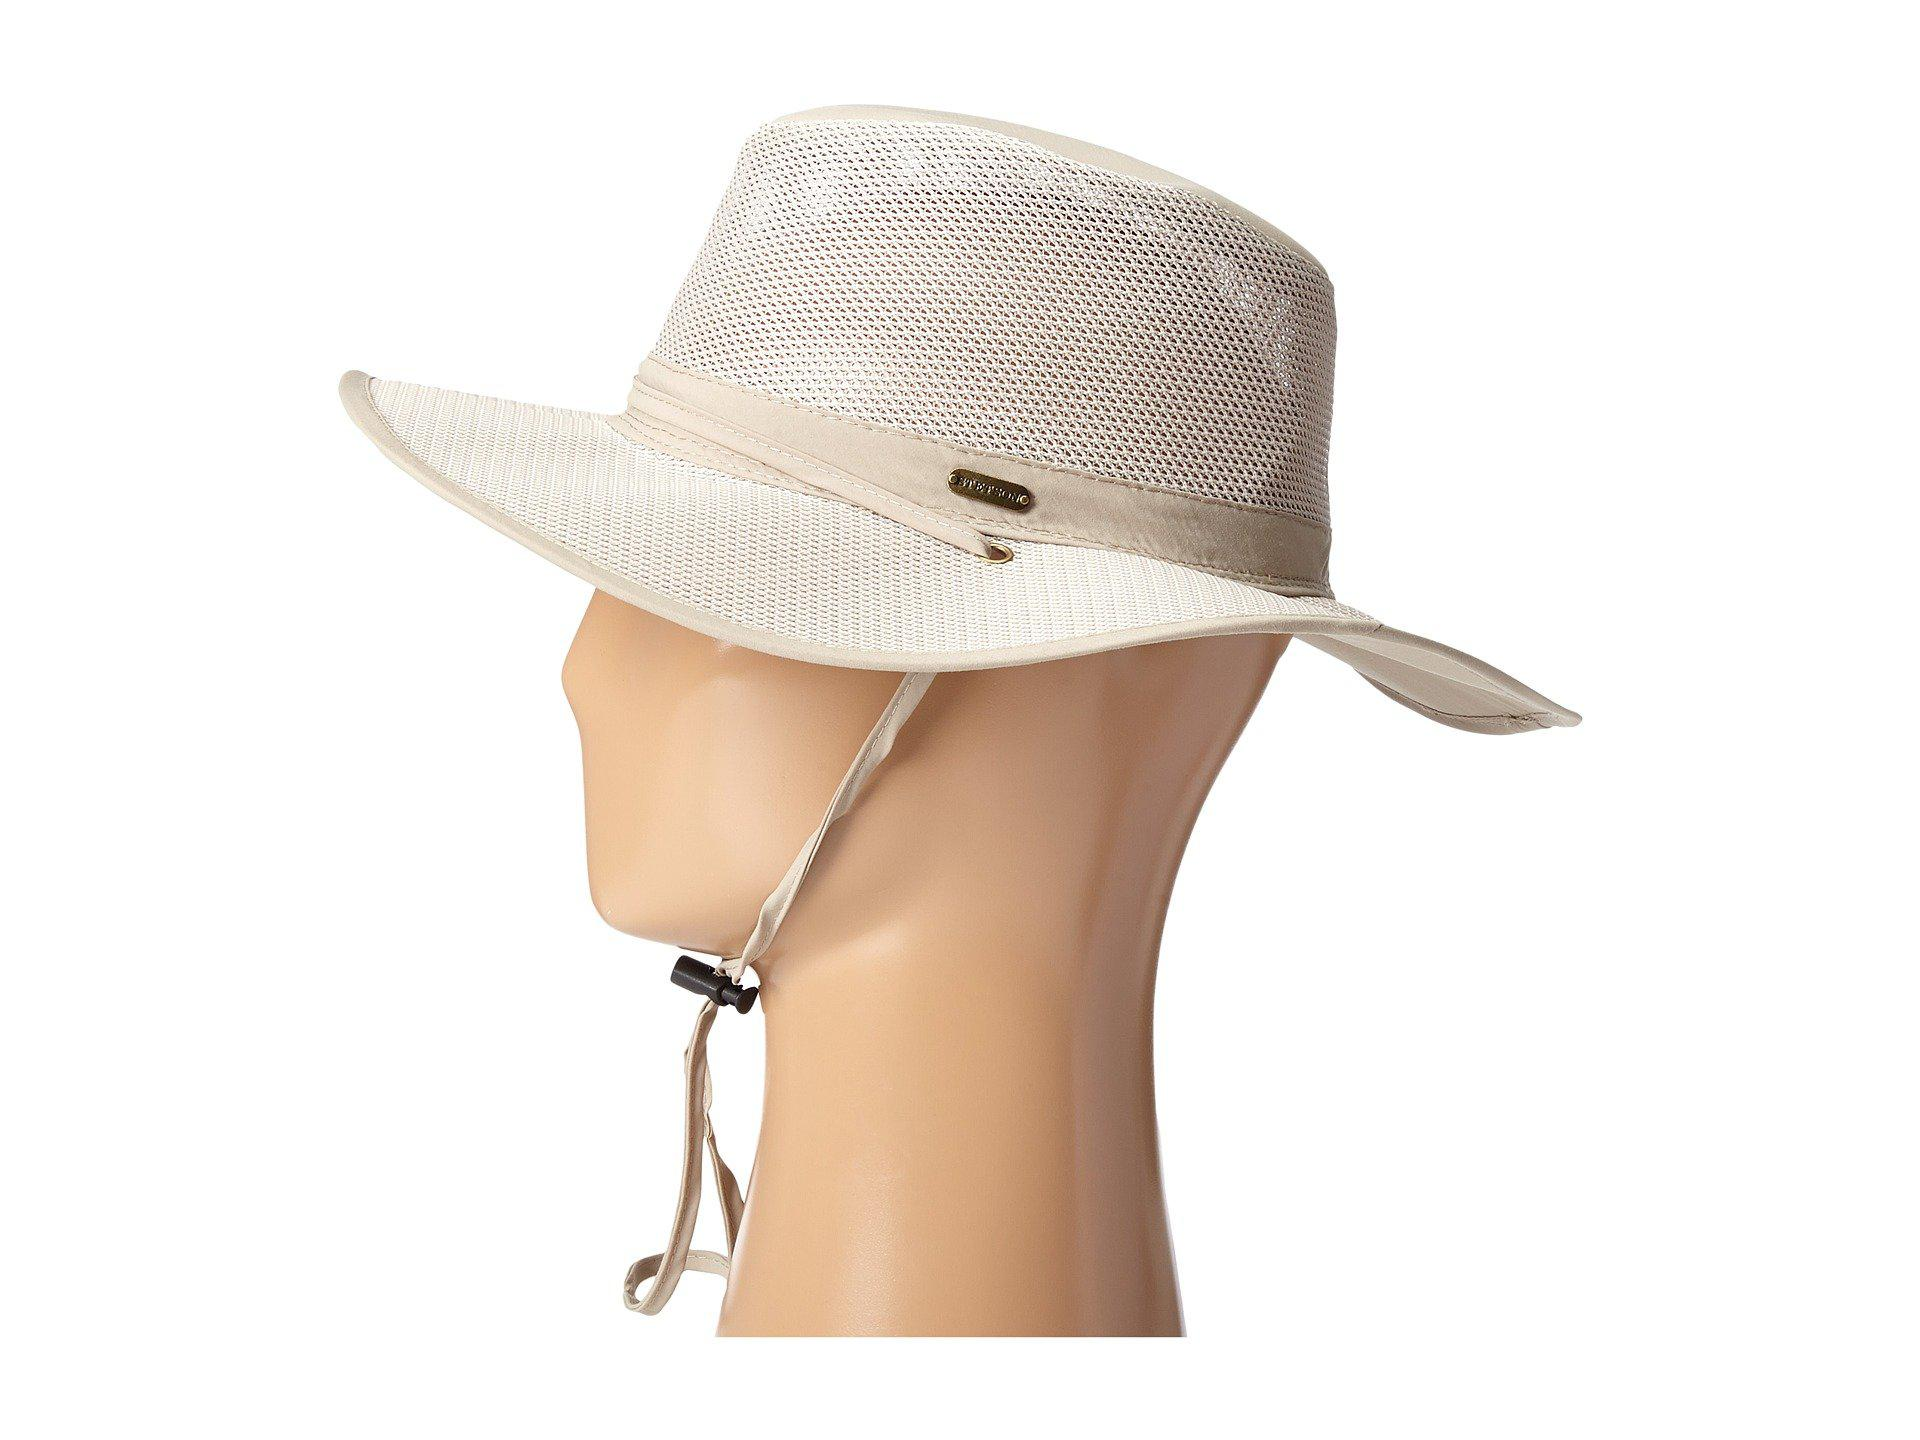 13e9858f9ca Stetson - Natural Big Brim Mesh Safari With No Fly Zone Insect Shield  Fabric (khaki. View fullscreen